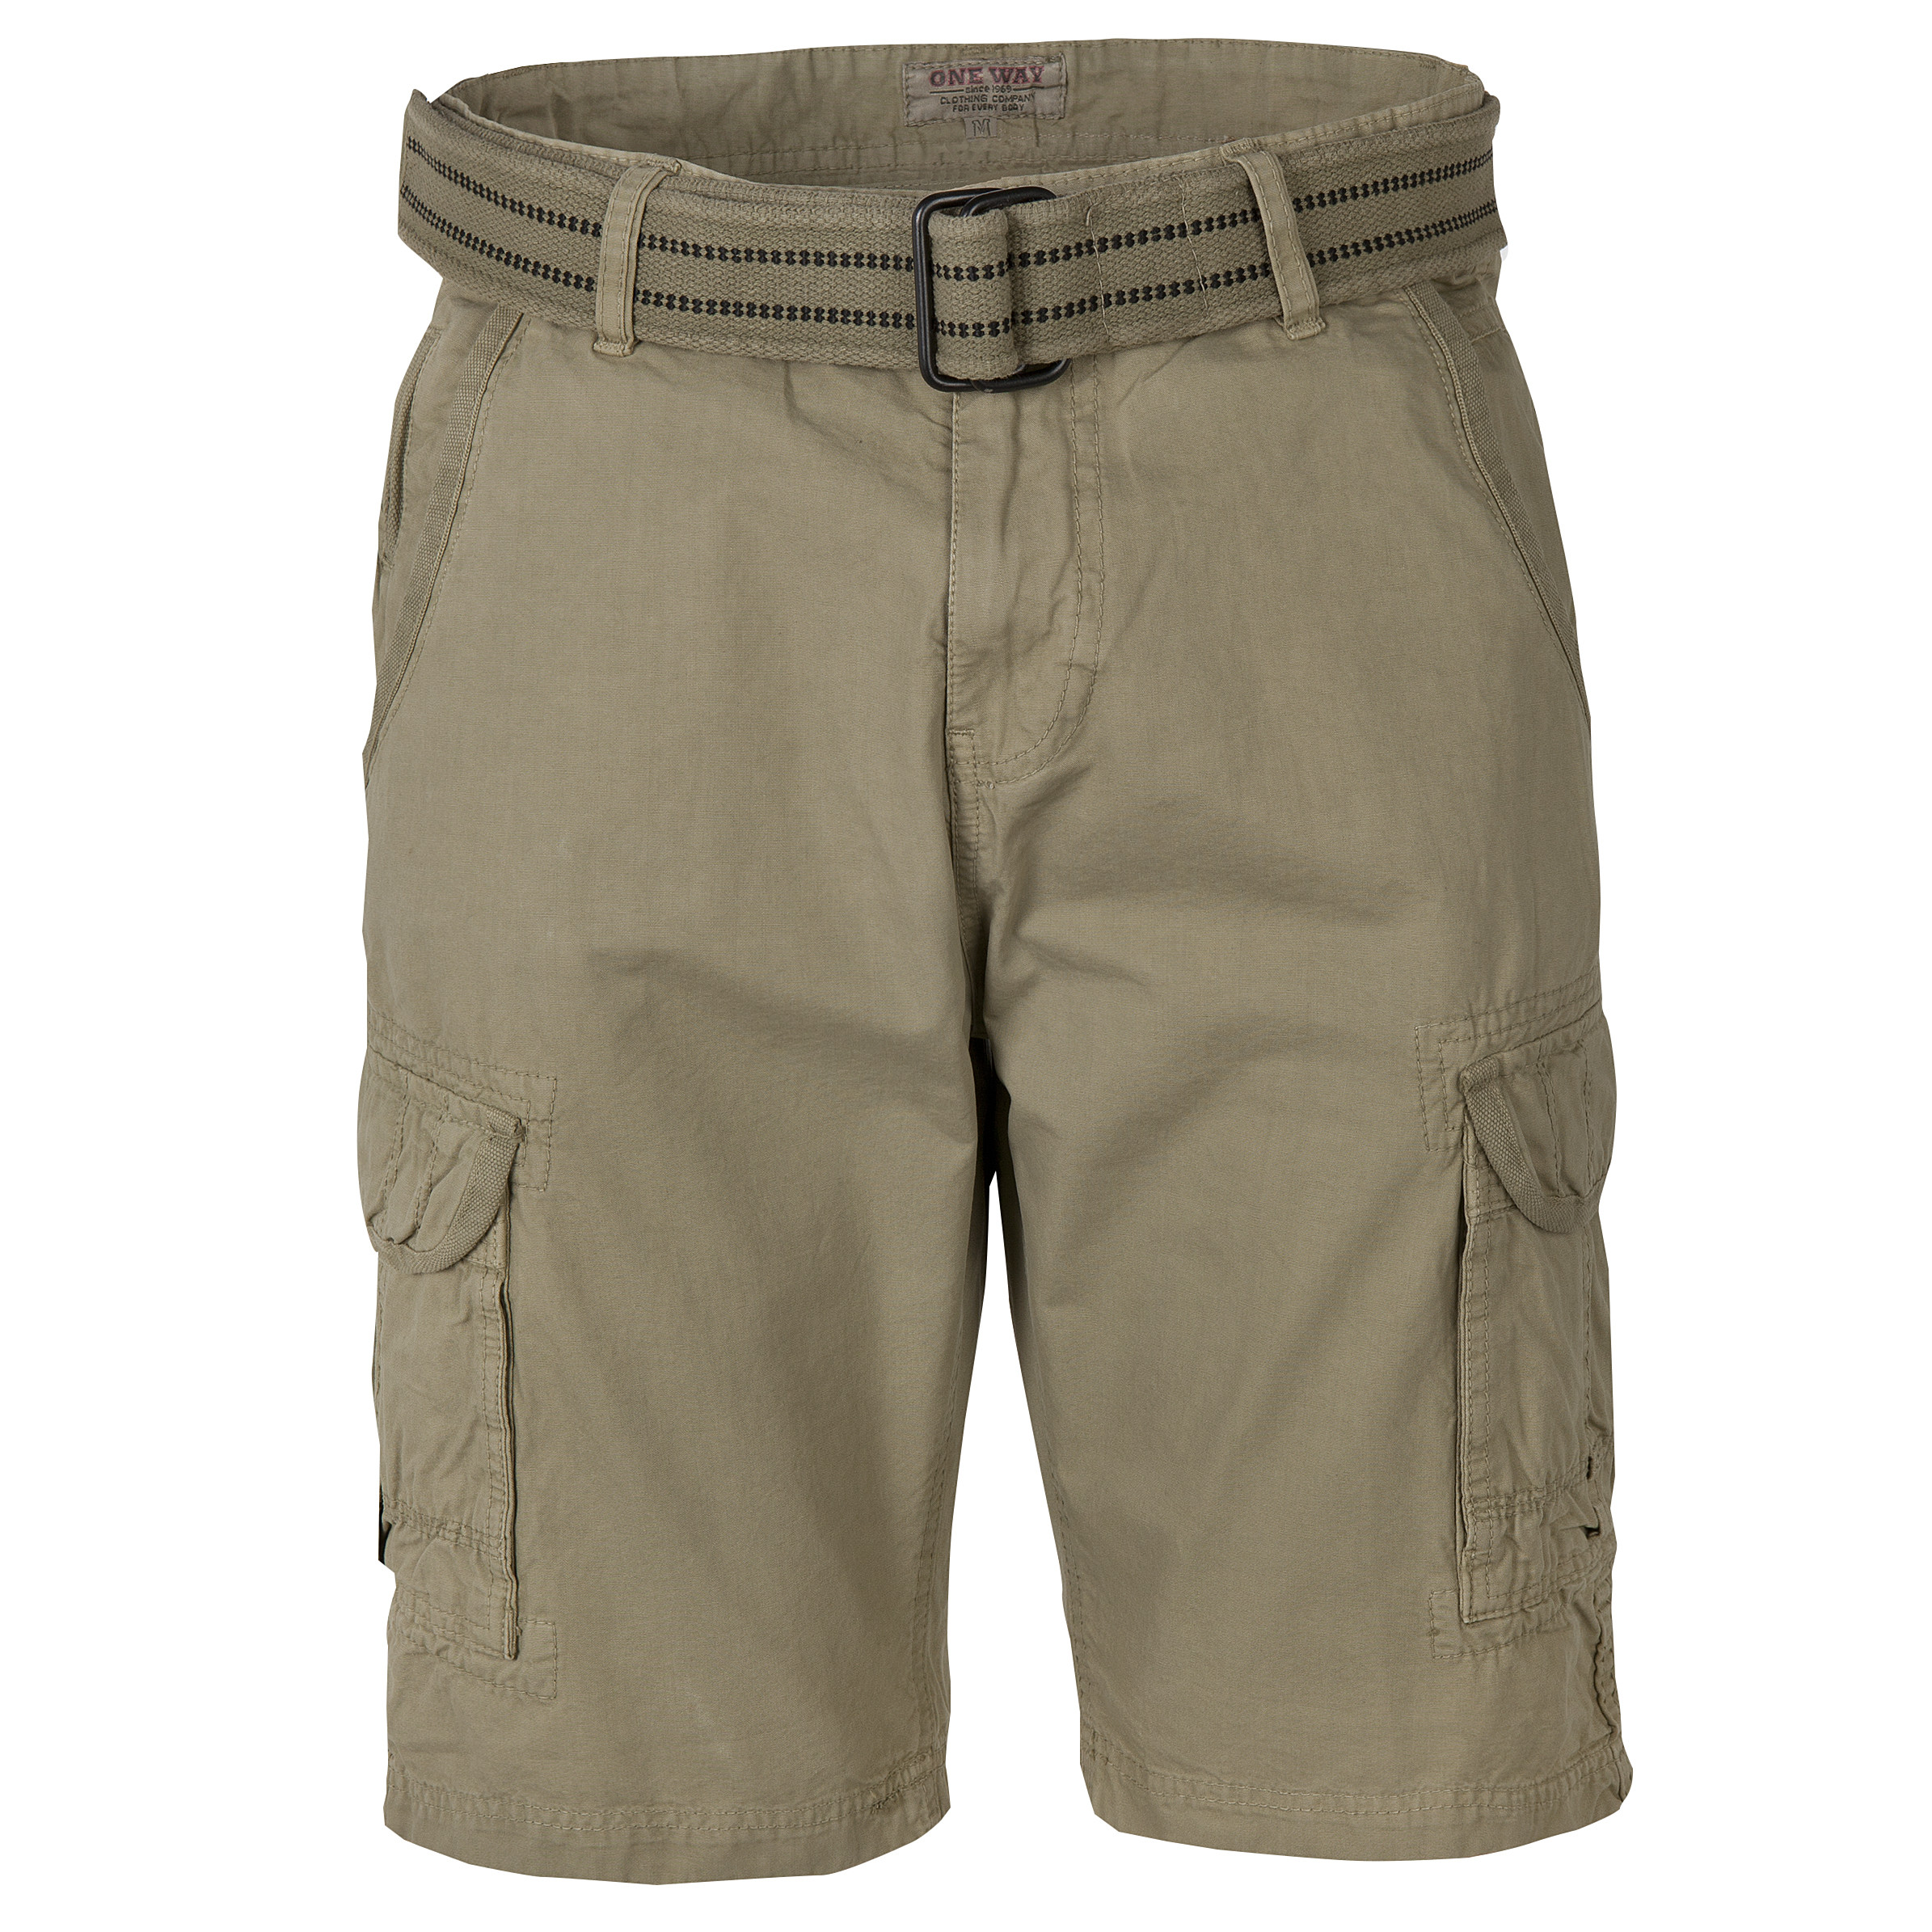 Chaps Mens Shorts W38 Khaki Polyester Schnelle Farbe Kleidung & Accessoires